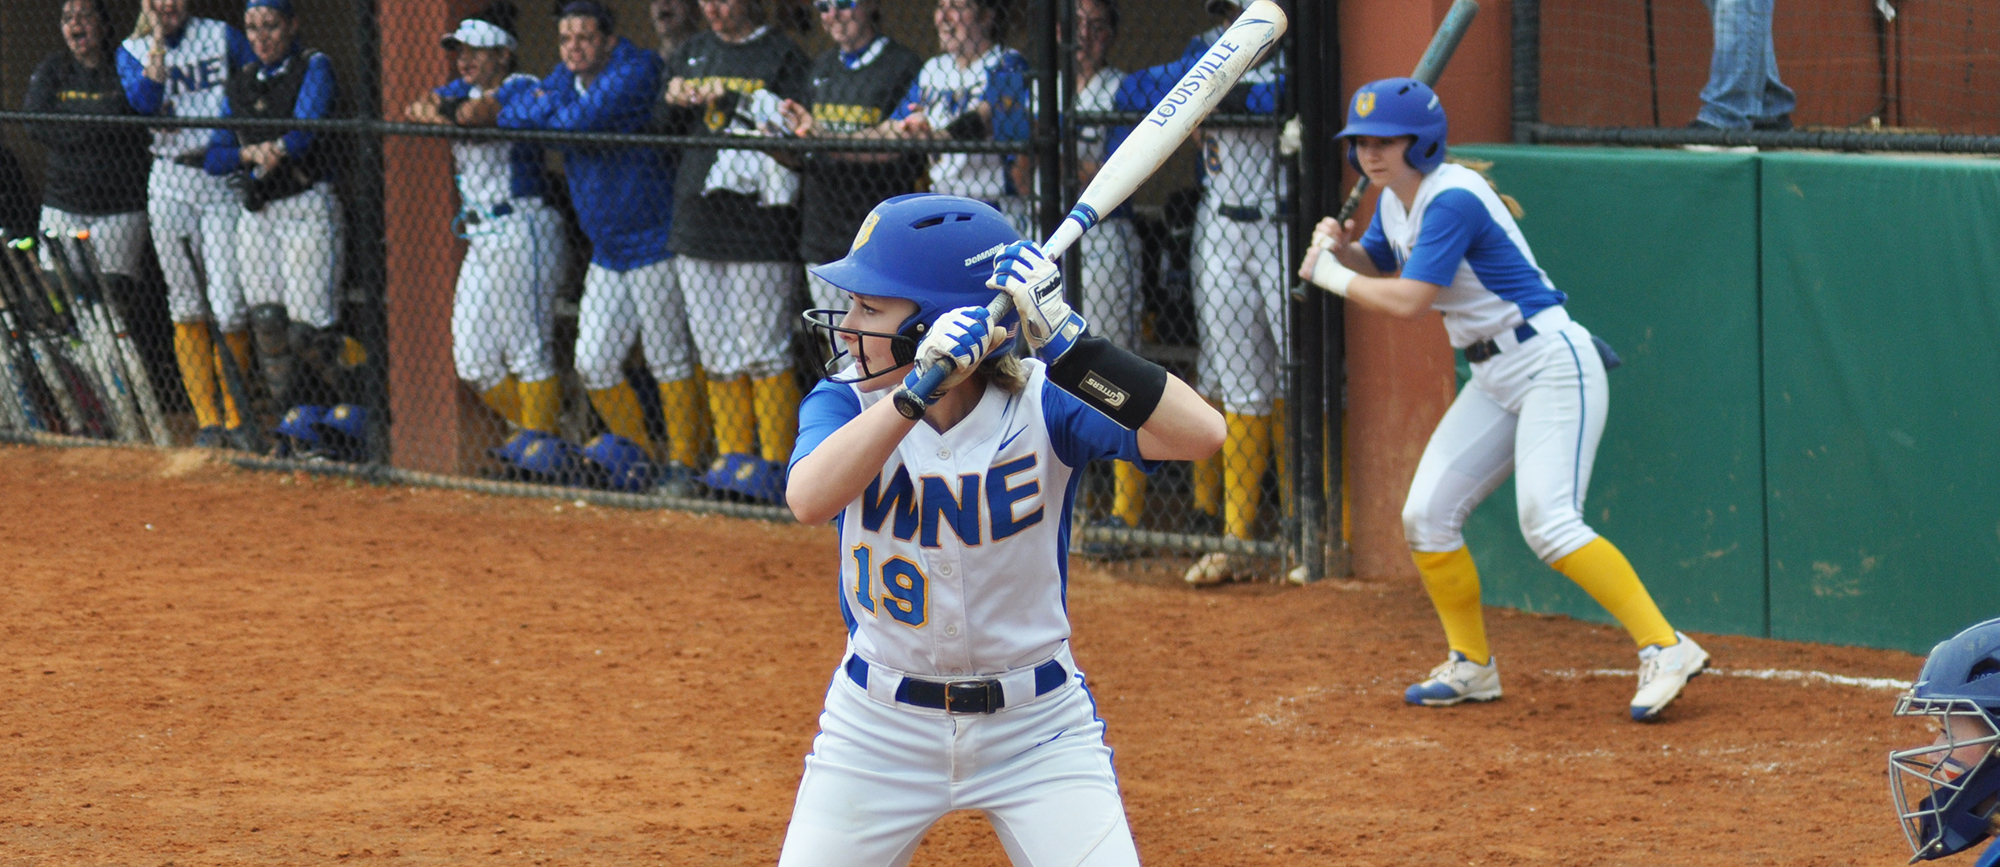 Sophomore Emily Cooney went 2-for-5 at the plate with one RBI and two runs scored during Western New England's doubleheader sweep of Roger Williams on Sunday. (Photo by Michelle Wlosek)